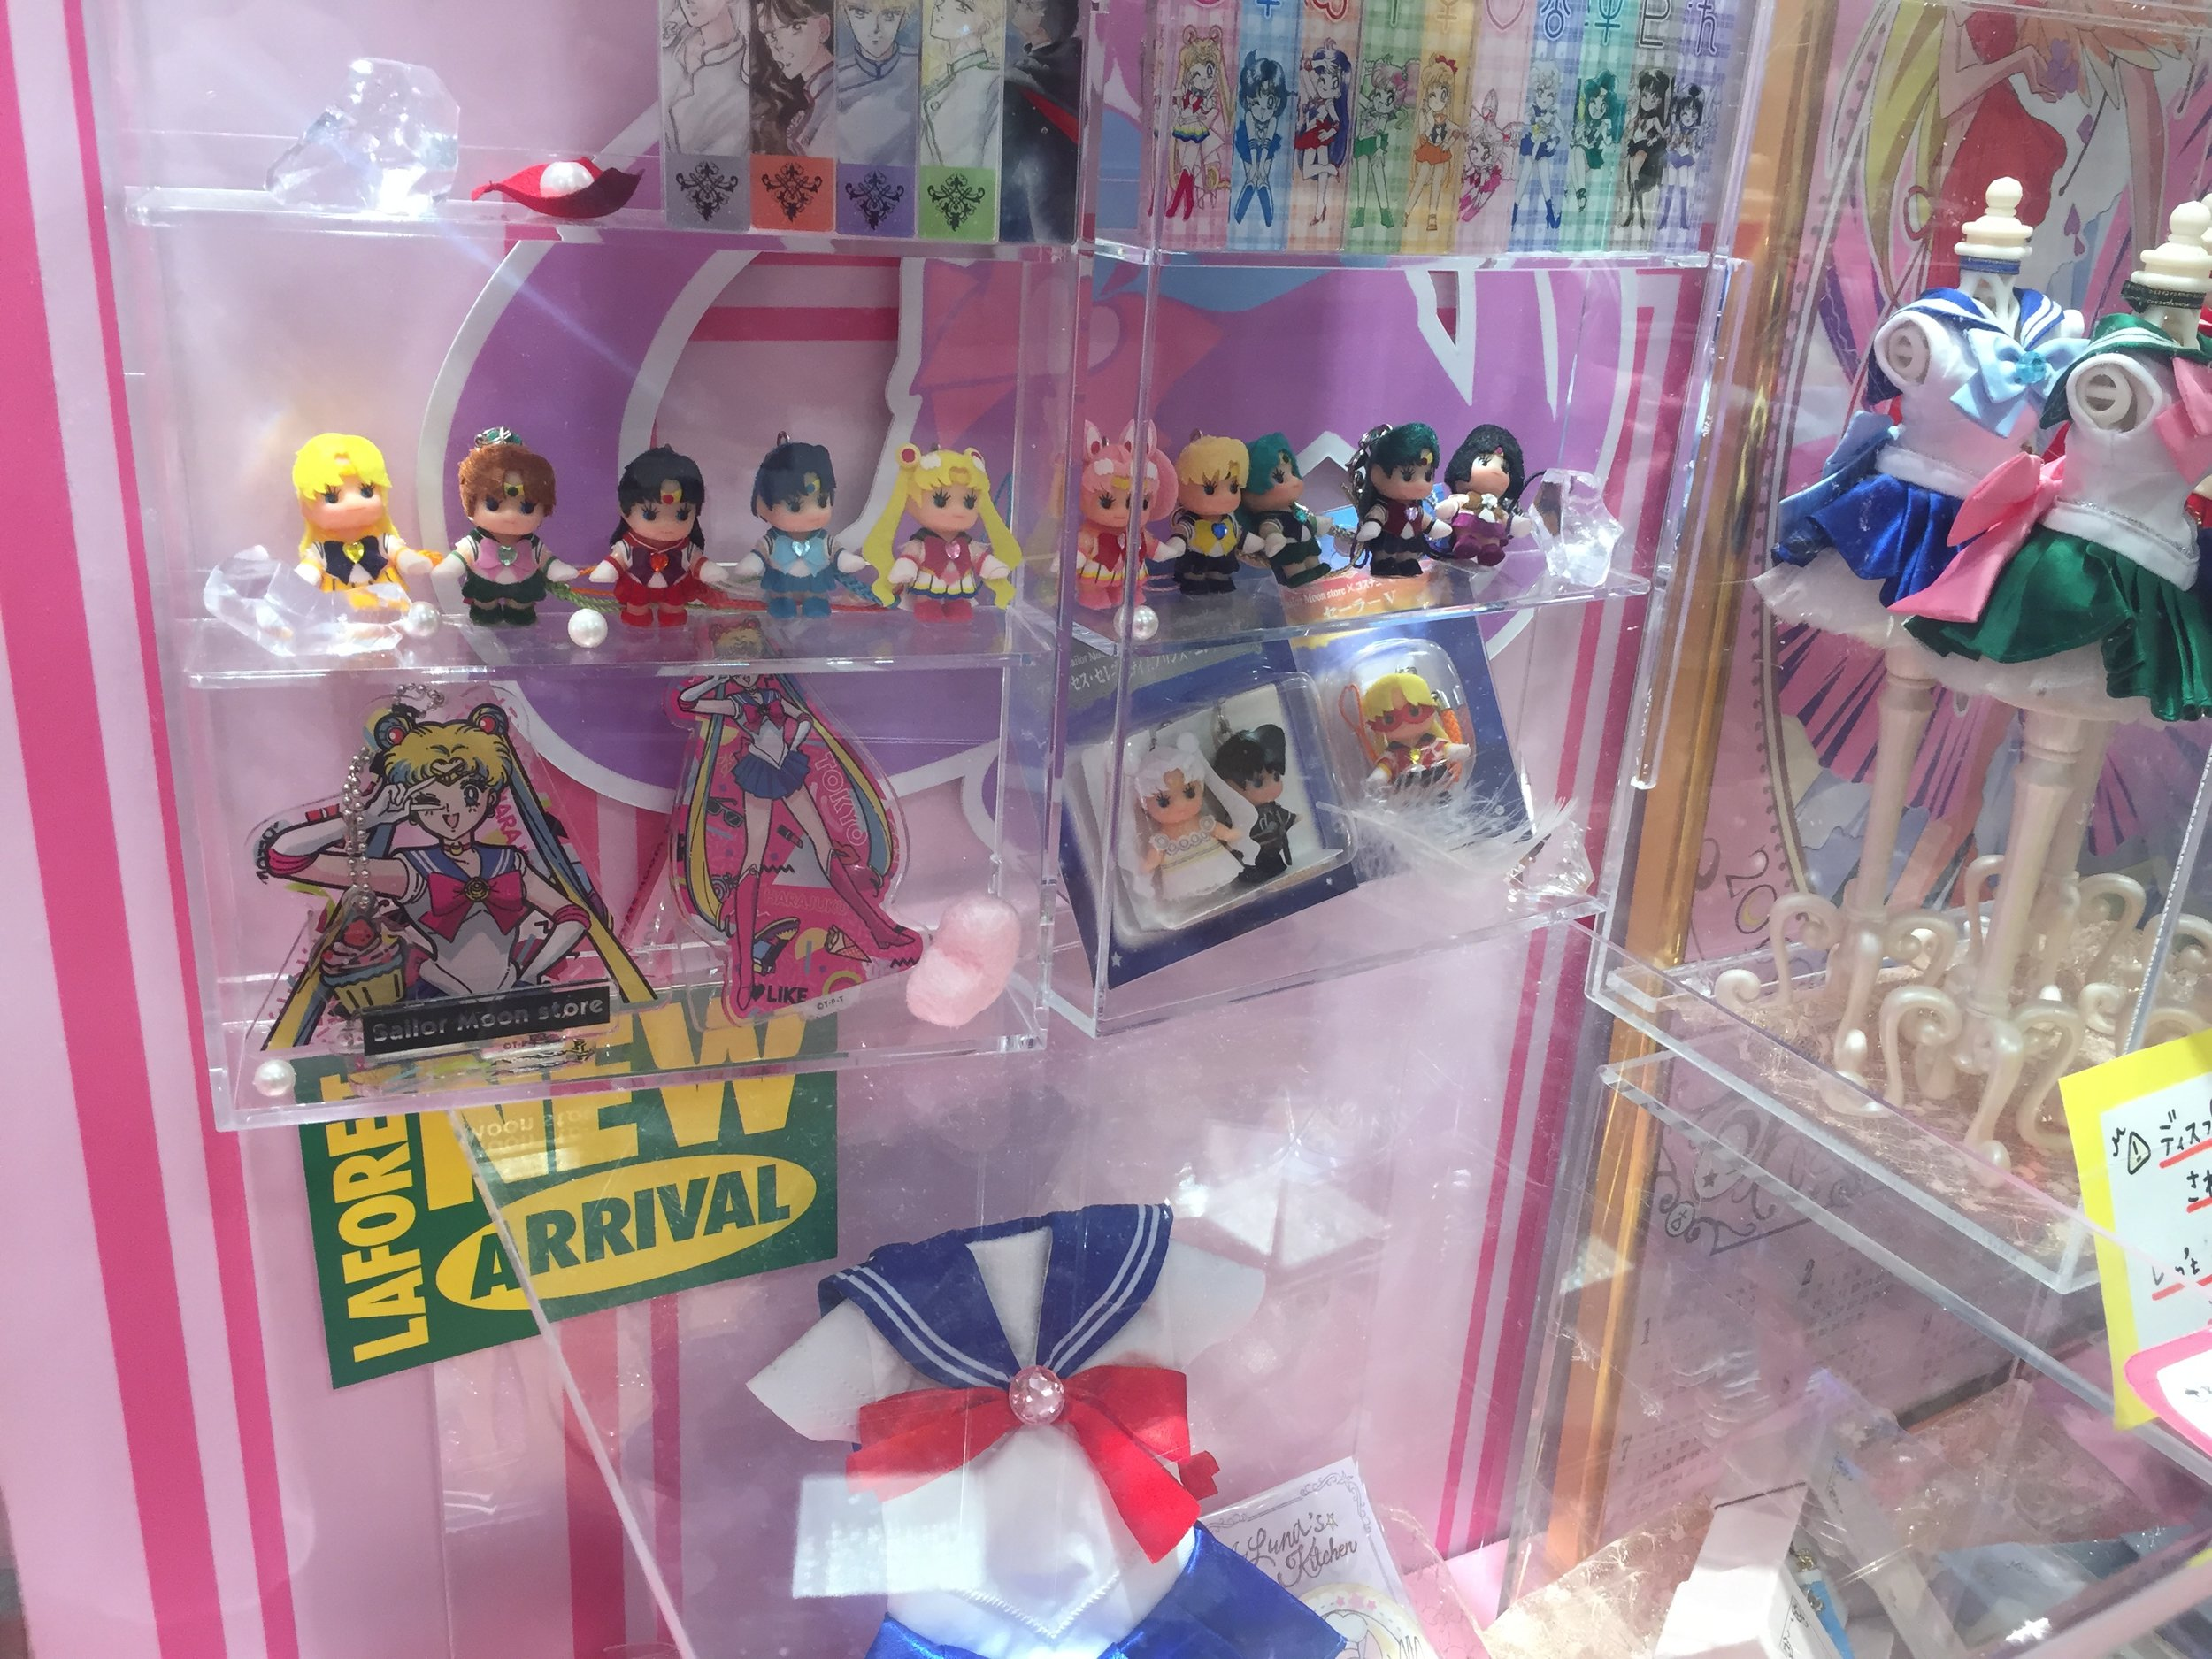 harajuku sailor moon store.JPG